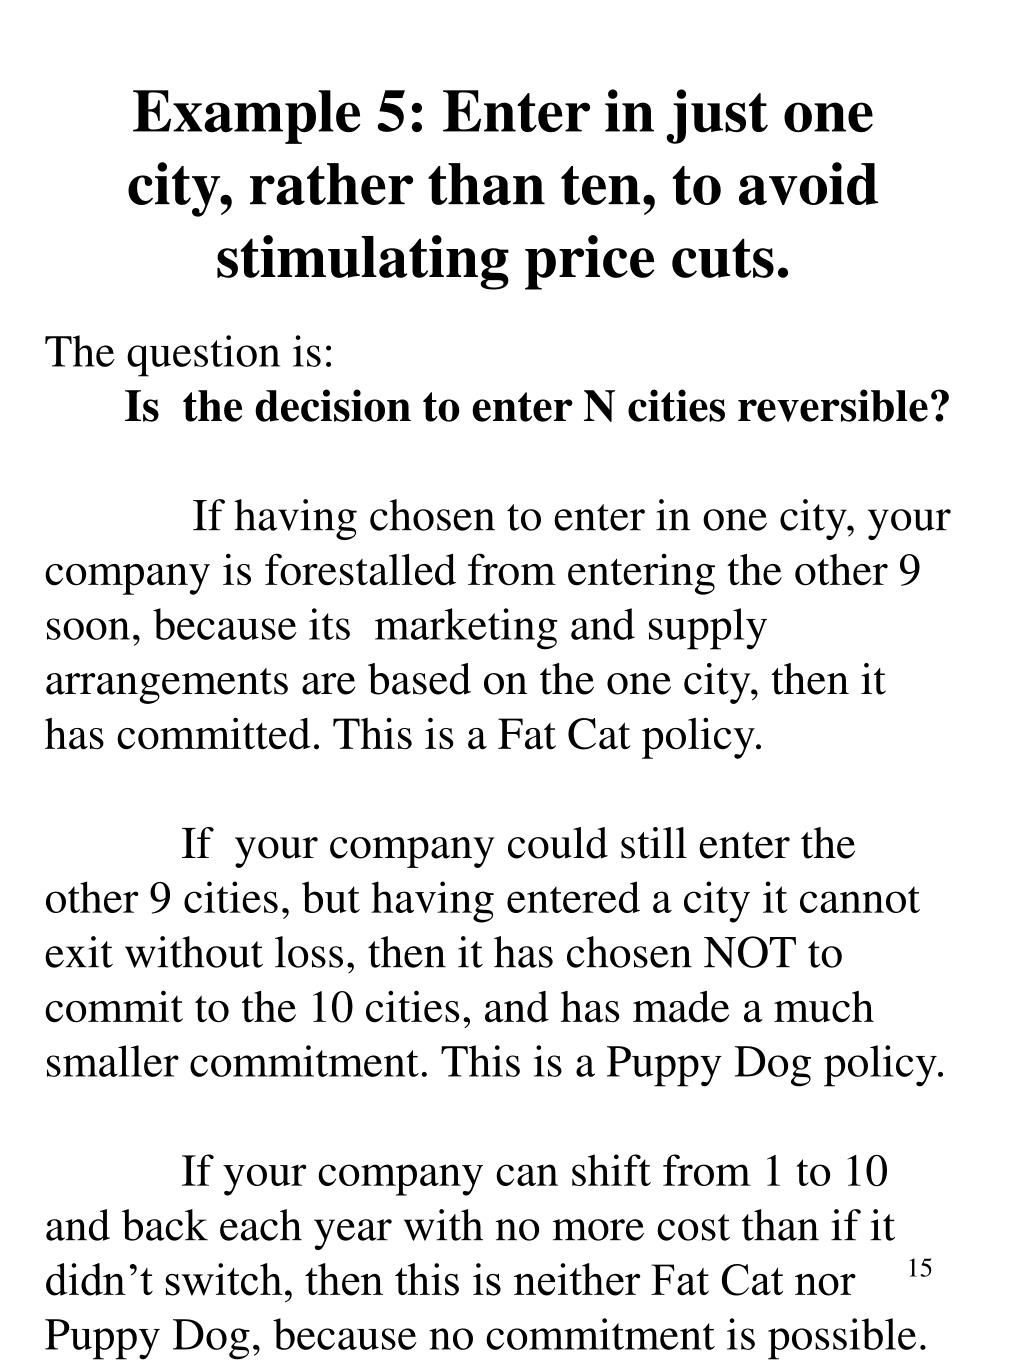 Example 5: Enter in just one city, rather than ten, to avoid stimulating price cuts.